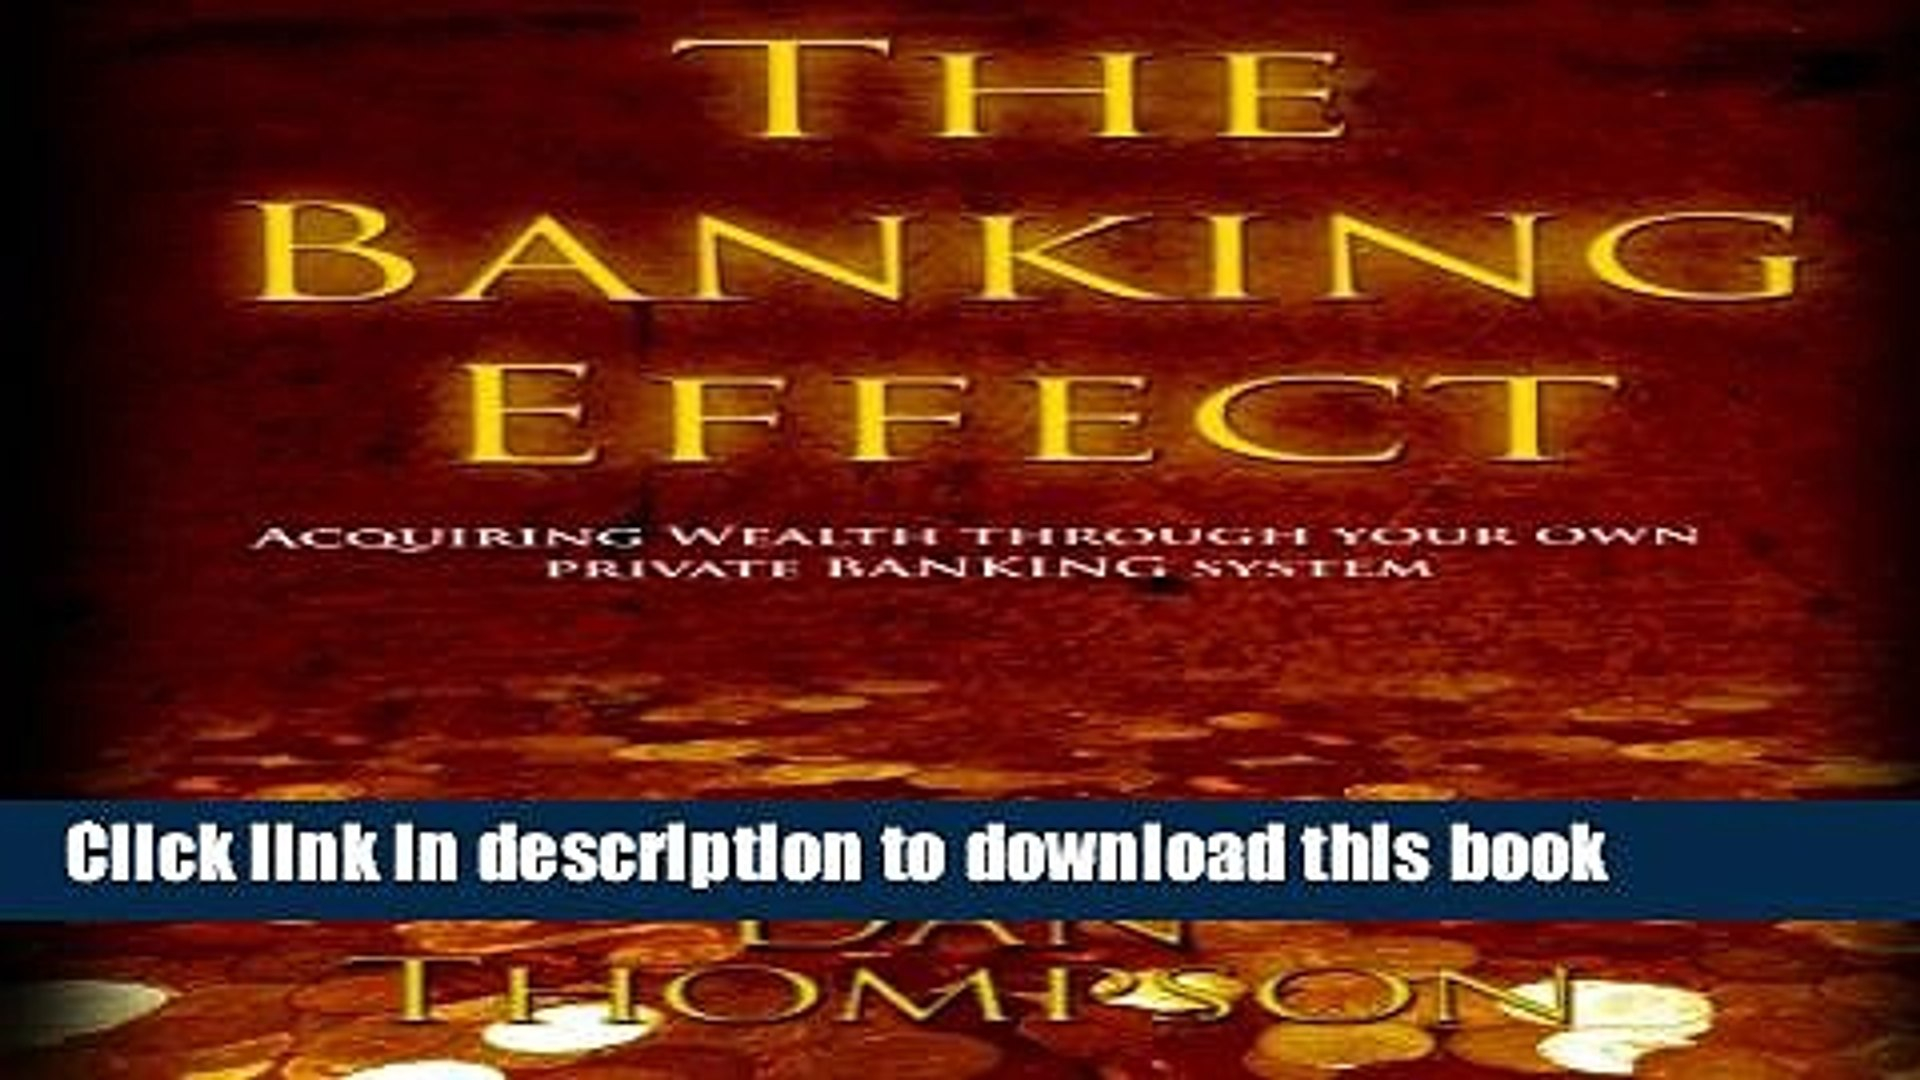 [Popular] Books The Banking Effect: Acquiring wealth through your own Private Banking System. Full